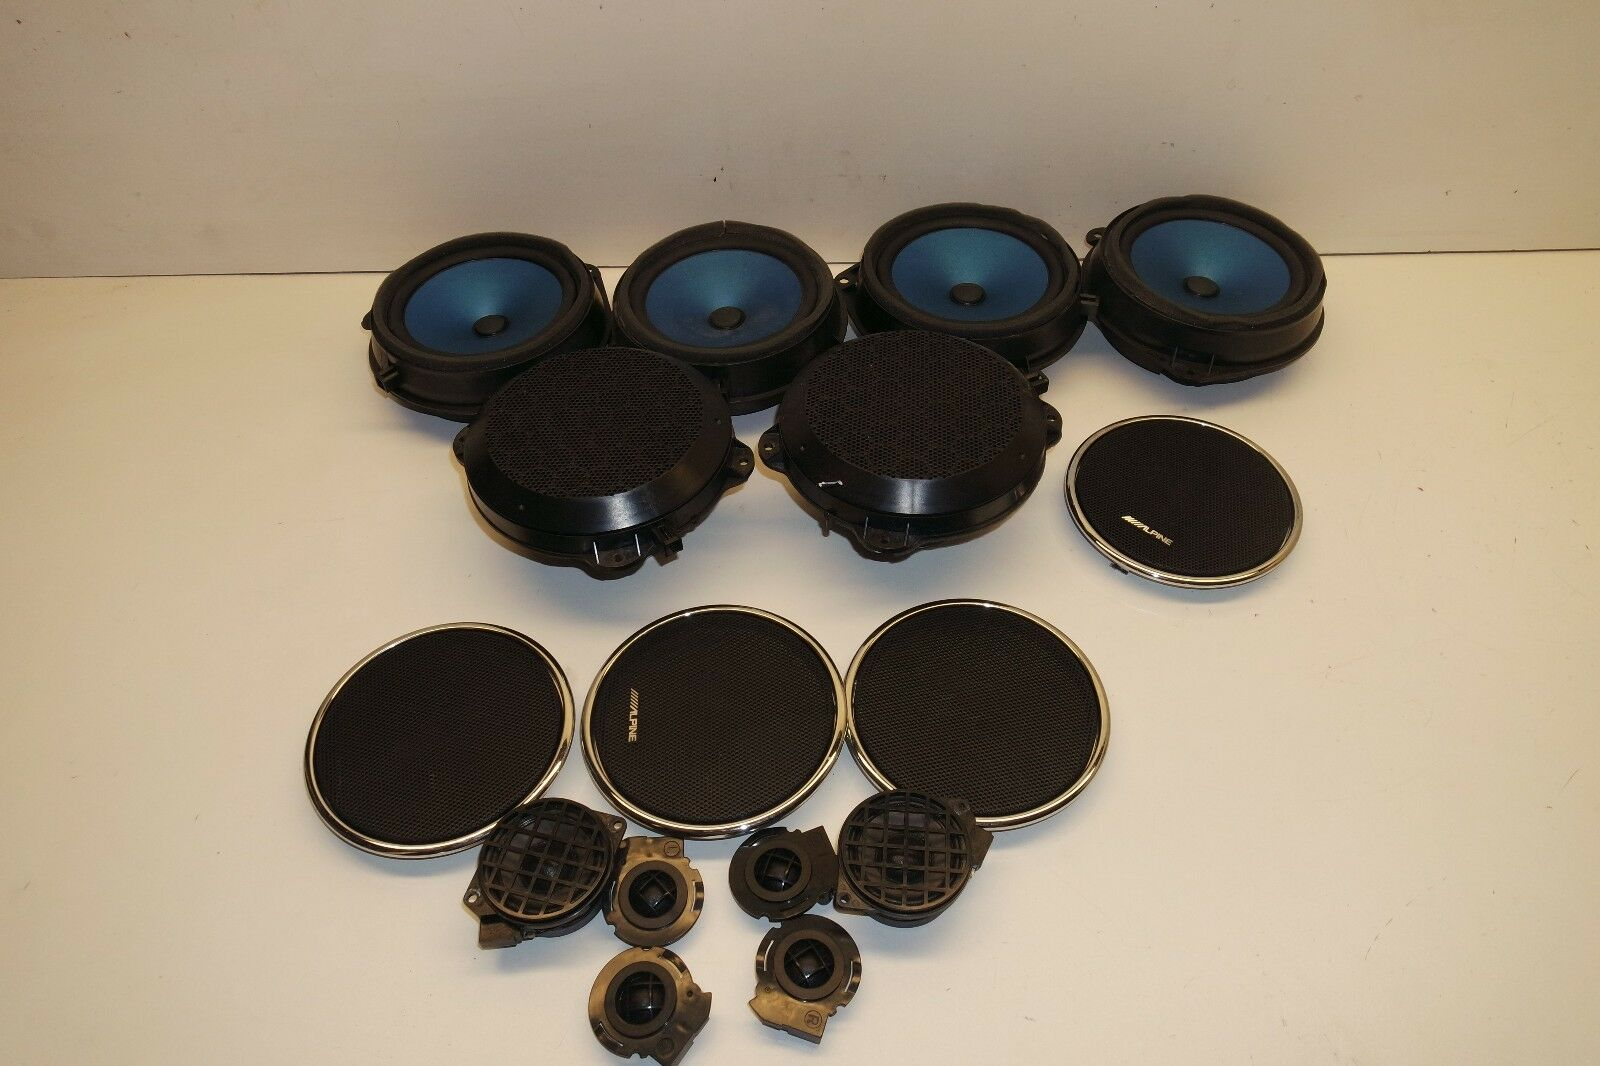 2005 Jaguar Xj Vanden Plas Alpine Speakers Set Covers X12 Ebay Xj8 Problems